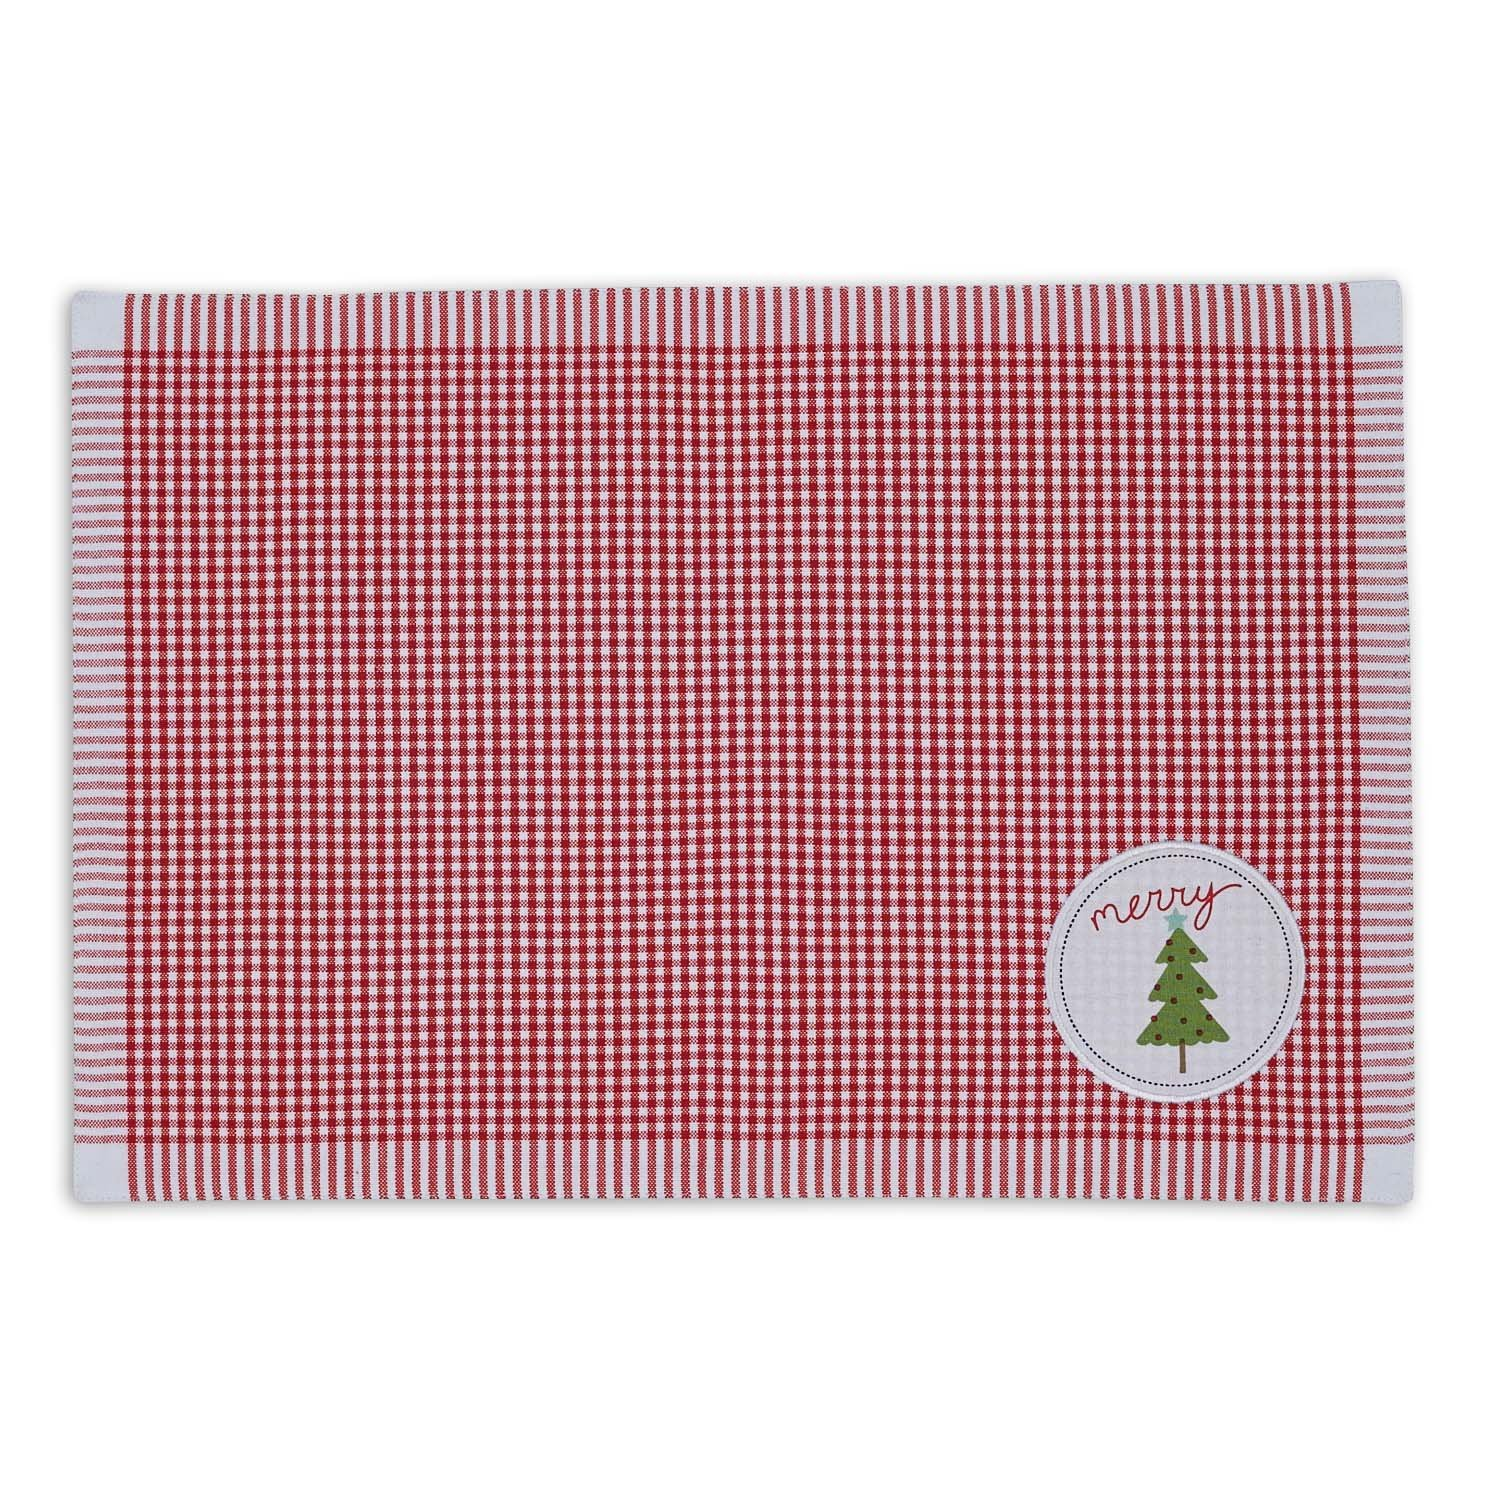 DII 100% Cotton, Printed Everyday Basic Placemats, Fused and Lined, 13x19'', Christmas Tree, Set of 6